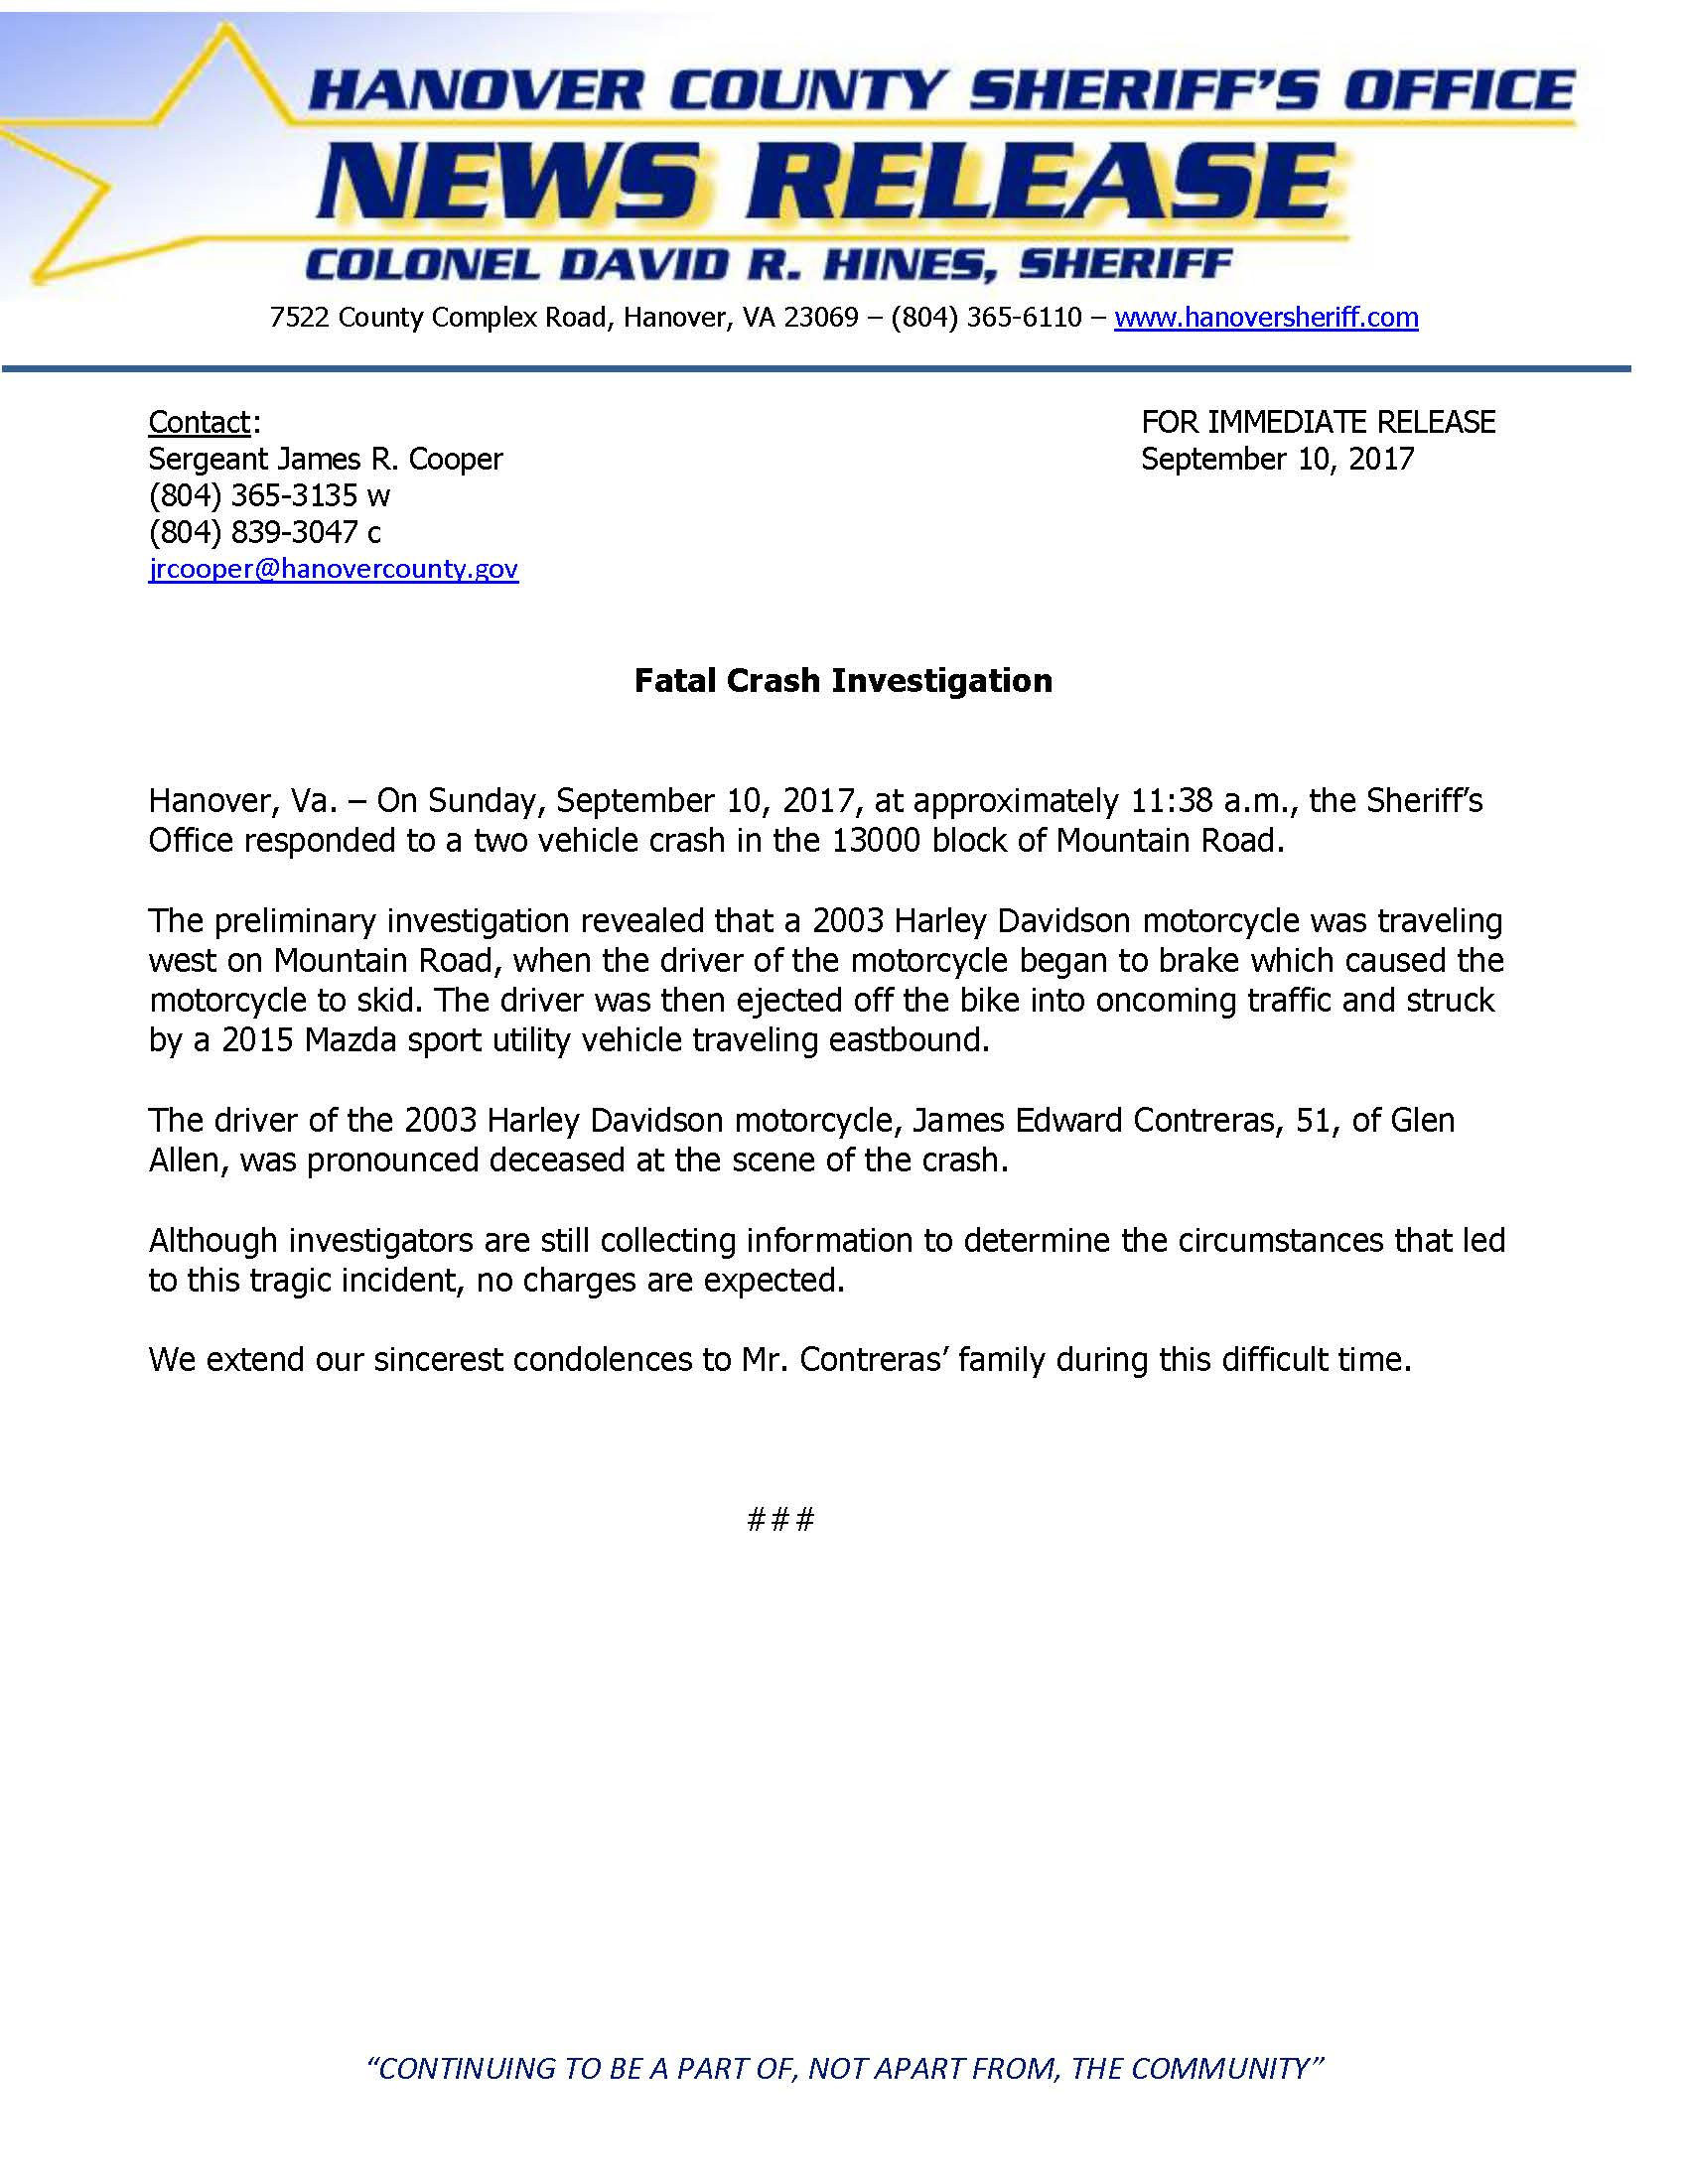 HCSO - Fatal Crash - Mountain Road- September 2017